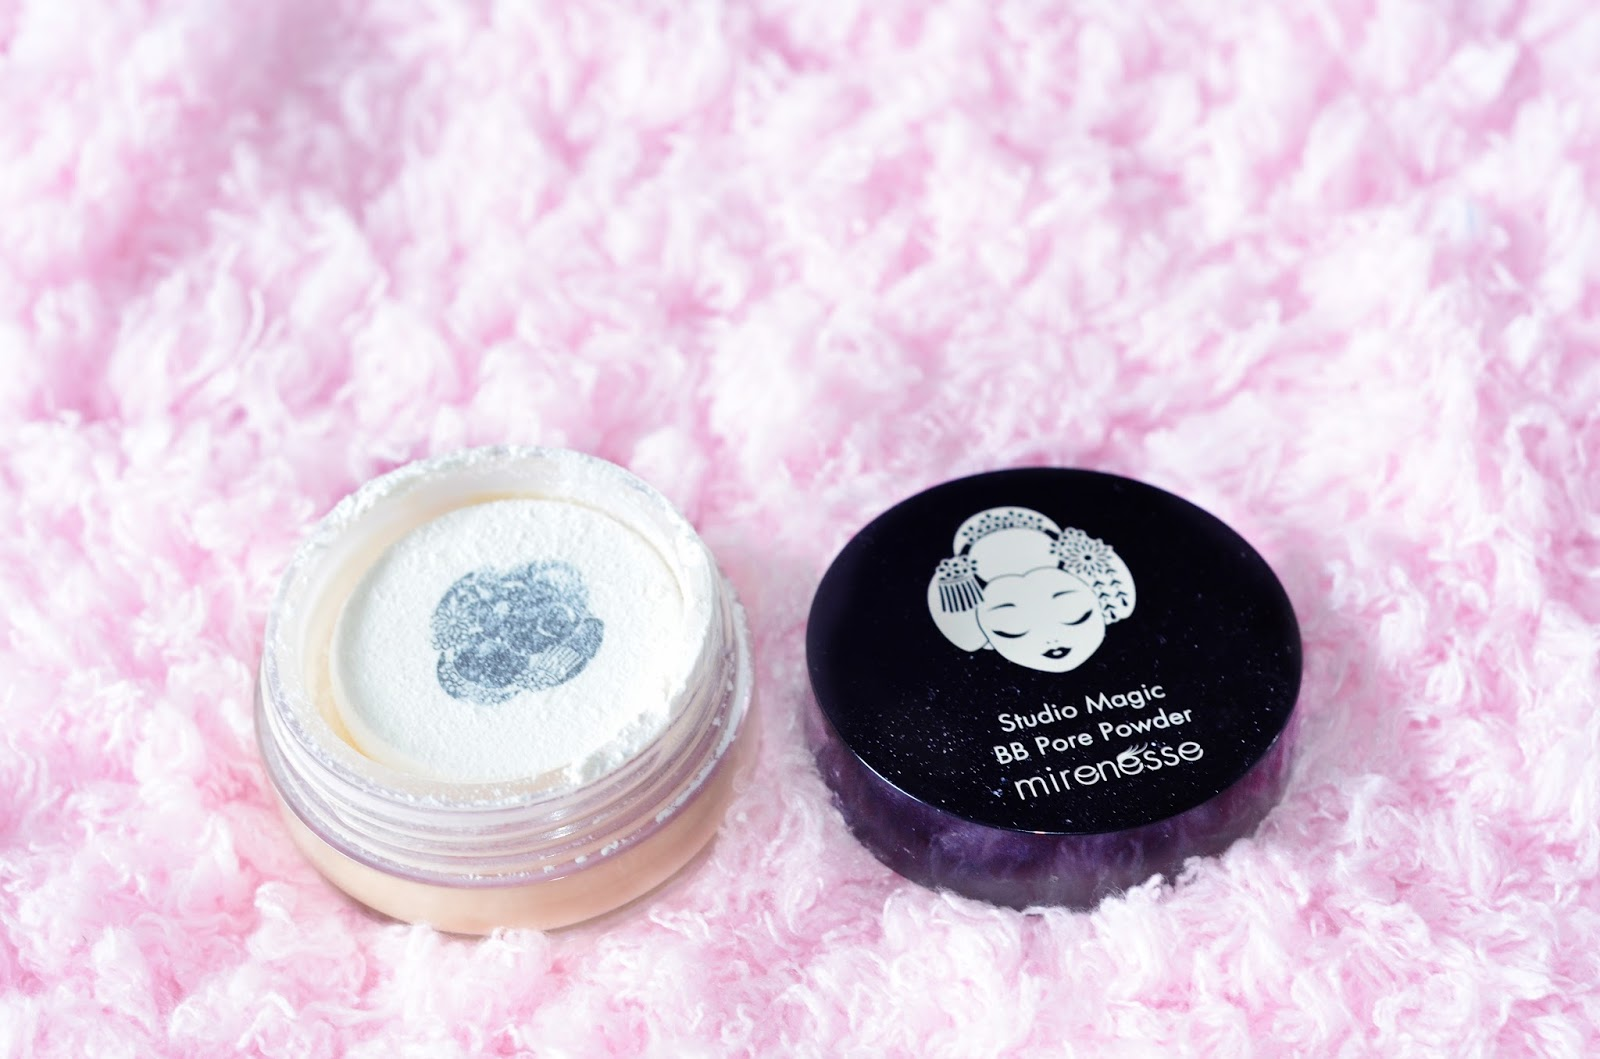 mirenesse studio magic bb pore powder review